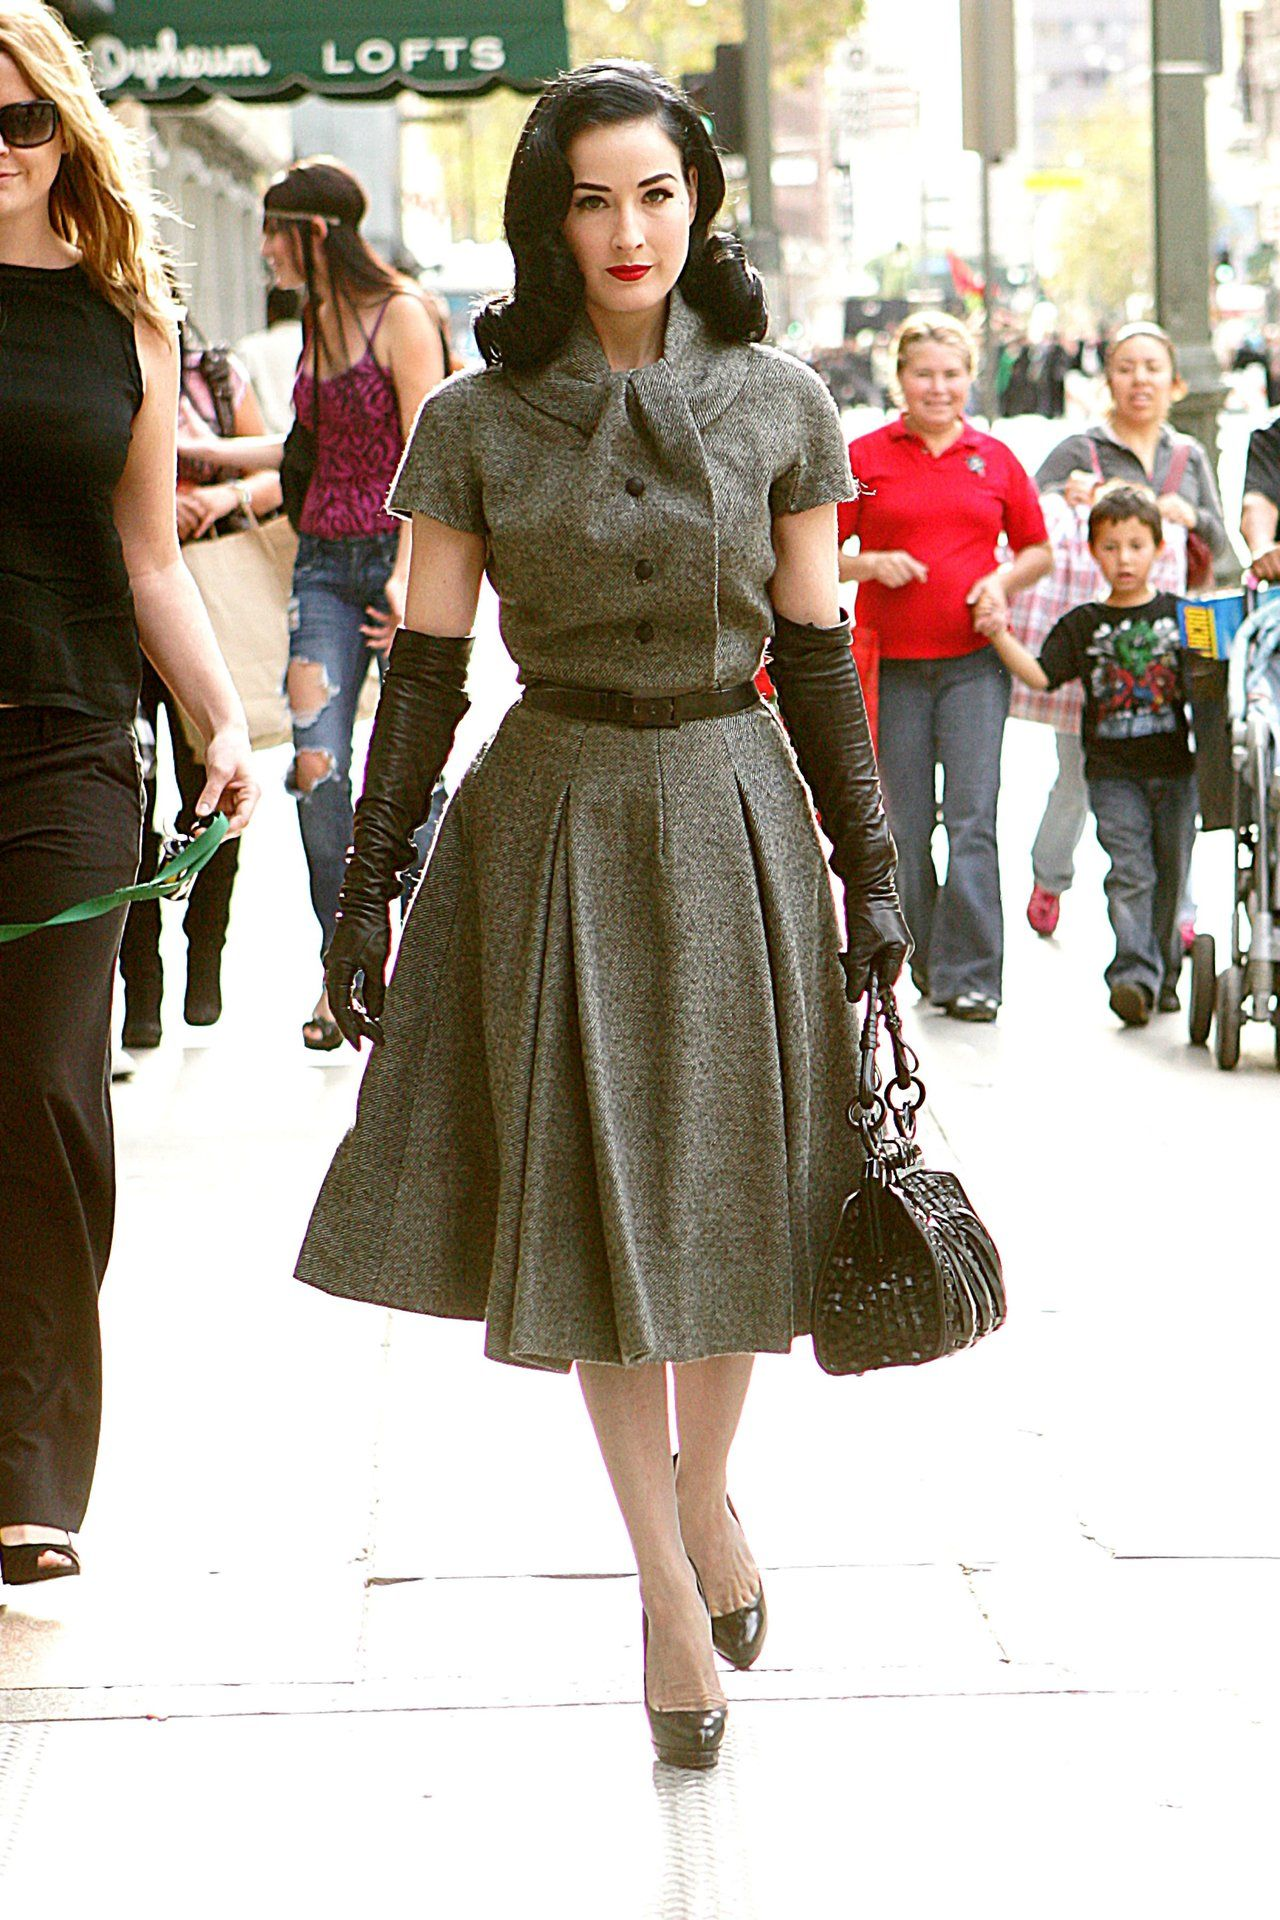 Dita Von Teese in vintage 1950's Dior she is just a living doll